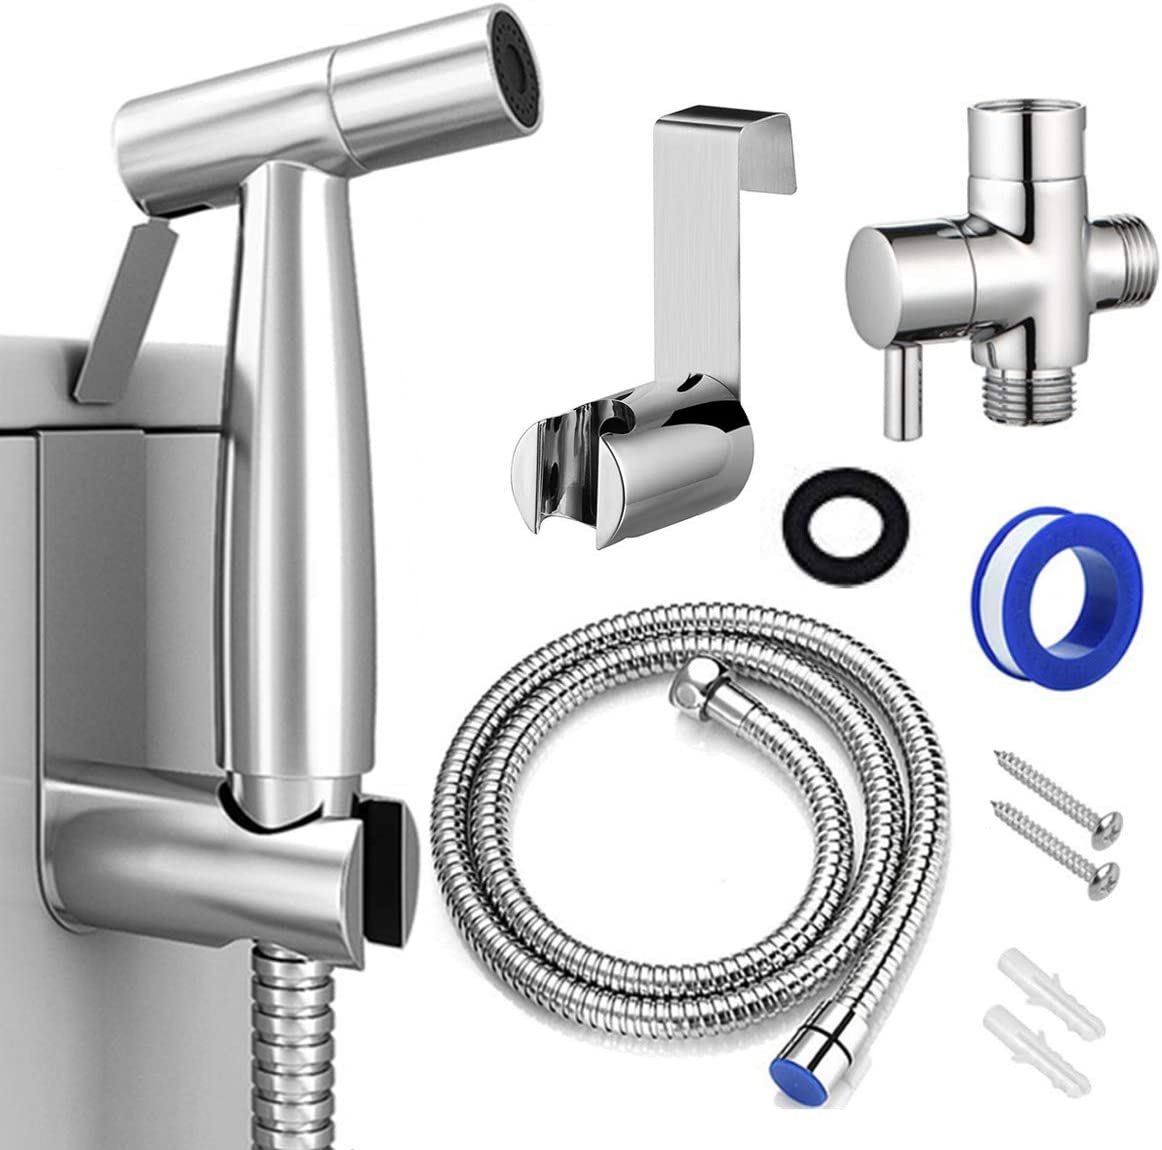 Bidet Sprayer For Toilet Handheld Cloth Diaper Sprayer Bathroom Jet Sprayer Kit Spray Attachment With Hose Stainless Steel Easy Install Great Water Pressure For Bathing Pets Feminine Hygiene Amazon Com